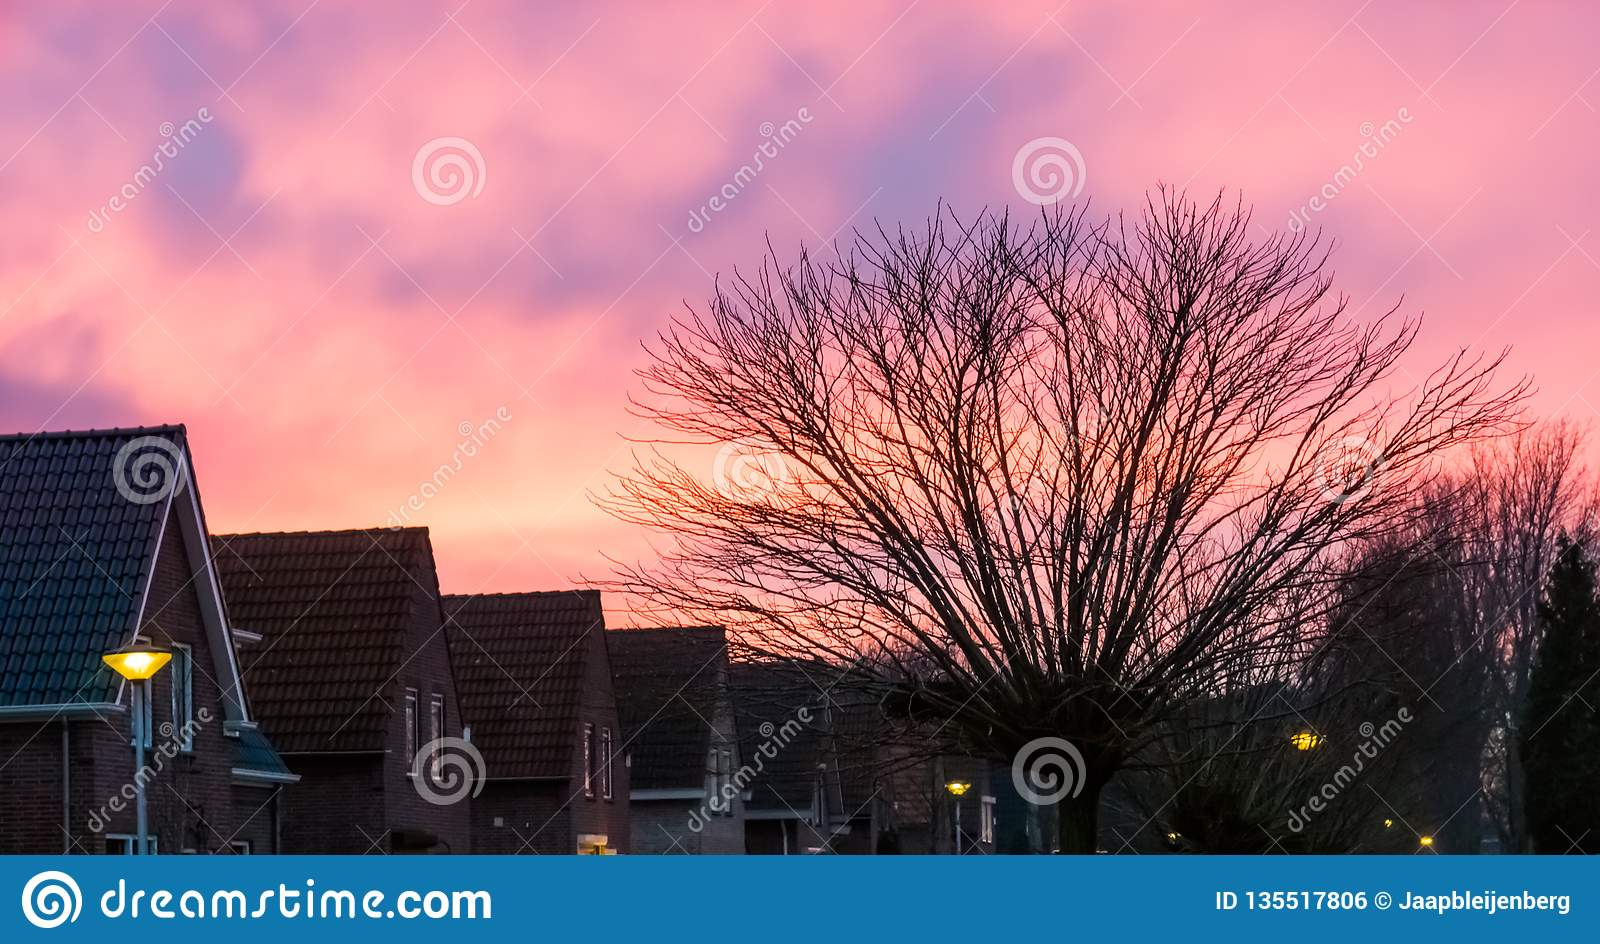 Typical dutch neighborhood with houses and a tree, pink nacreous clouds coloring the sky